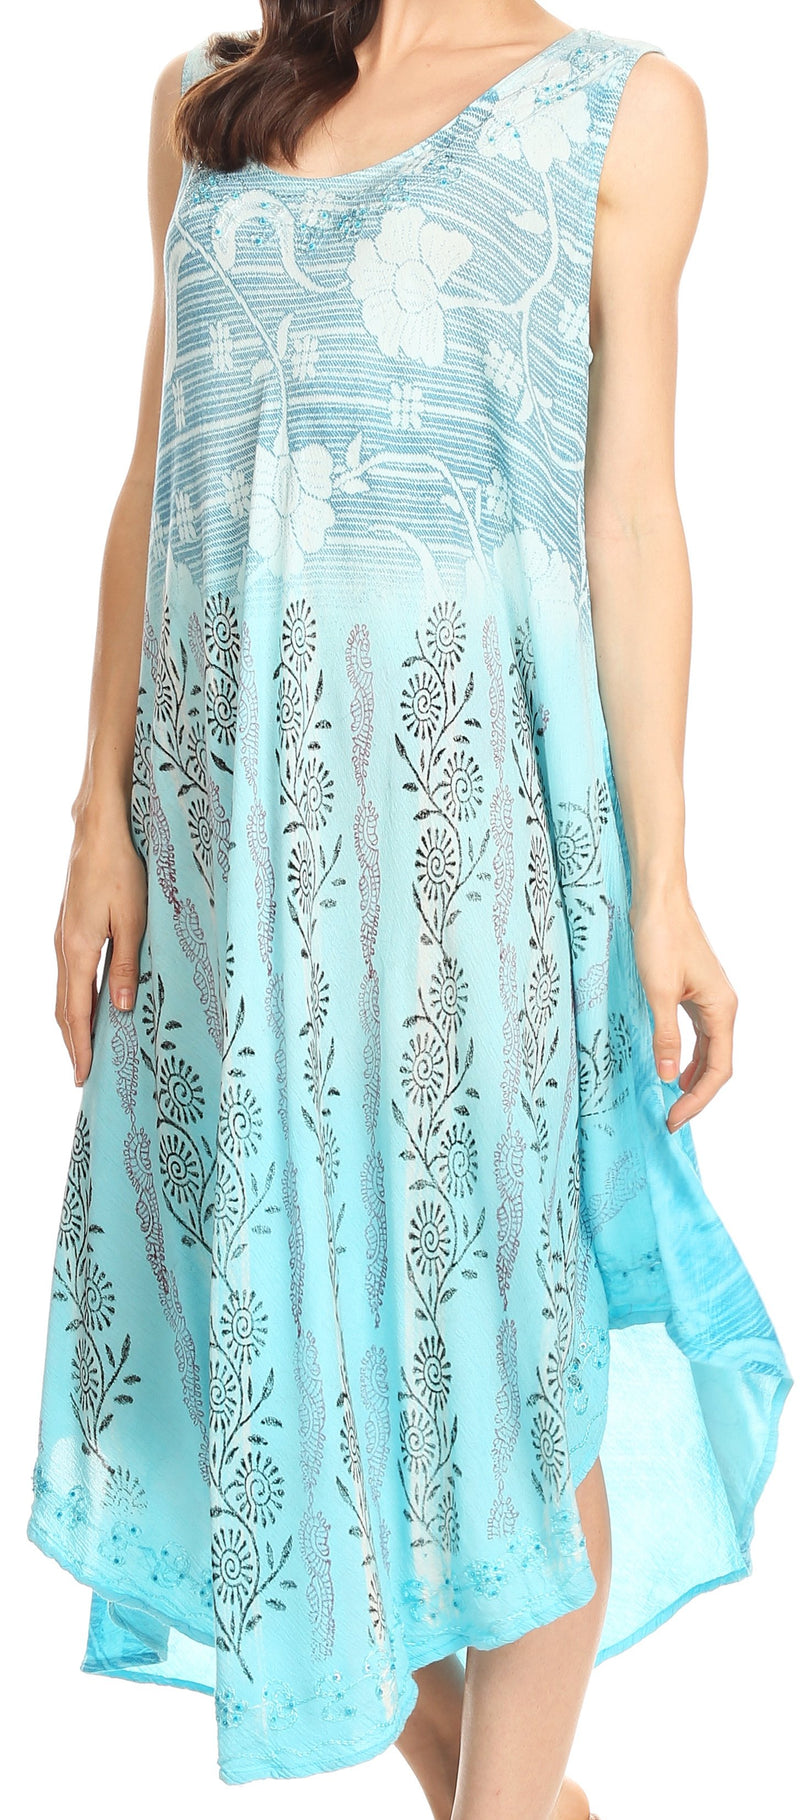 Sakkas Alicia Ombre Vine Print Batik Dress / Cover Up with Sequins and Embroidery